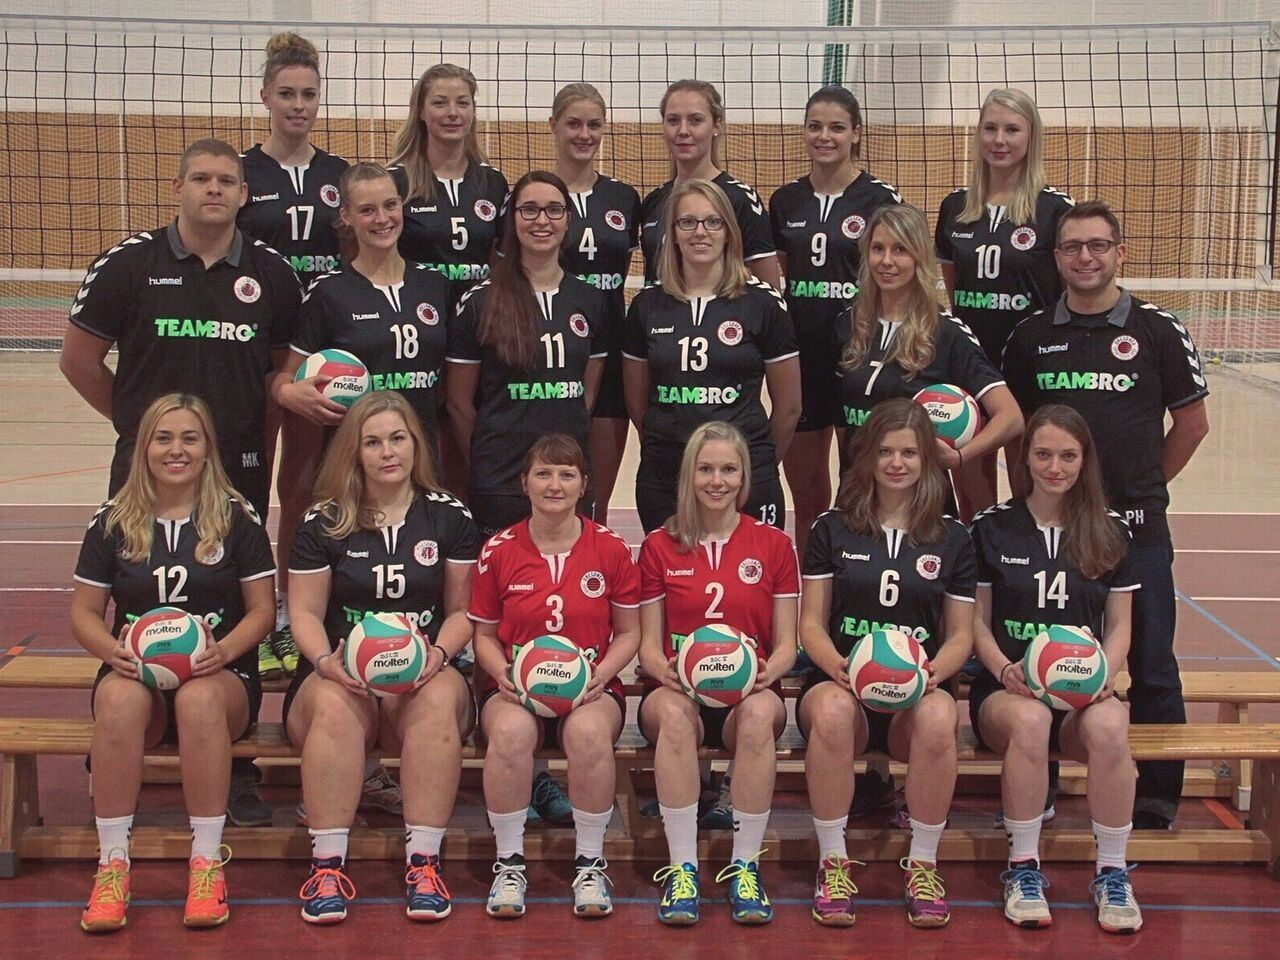 dresden volleyball damen